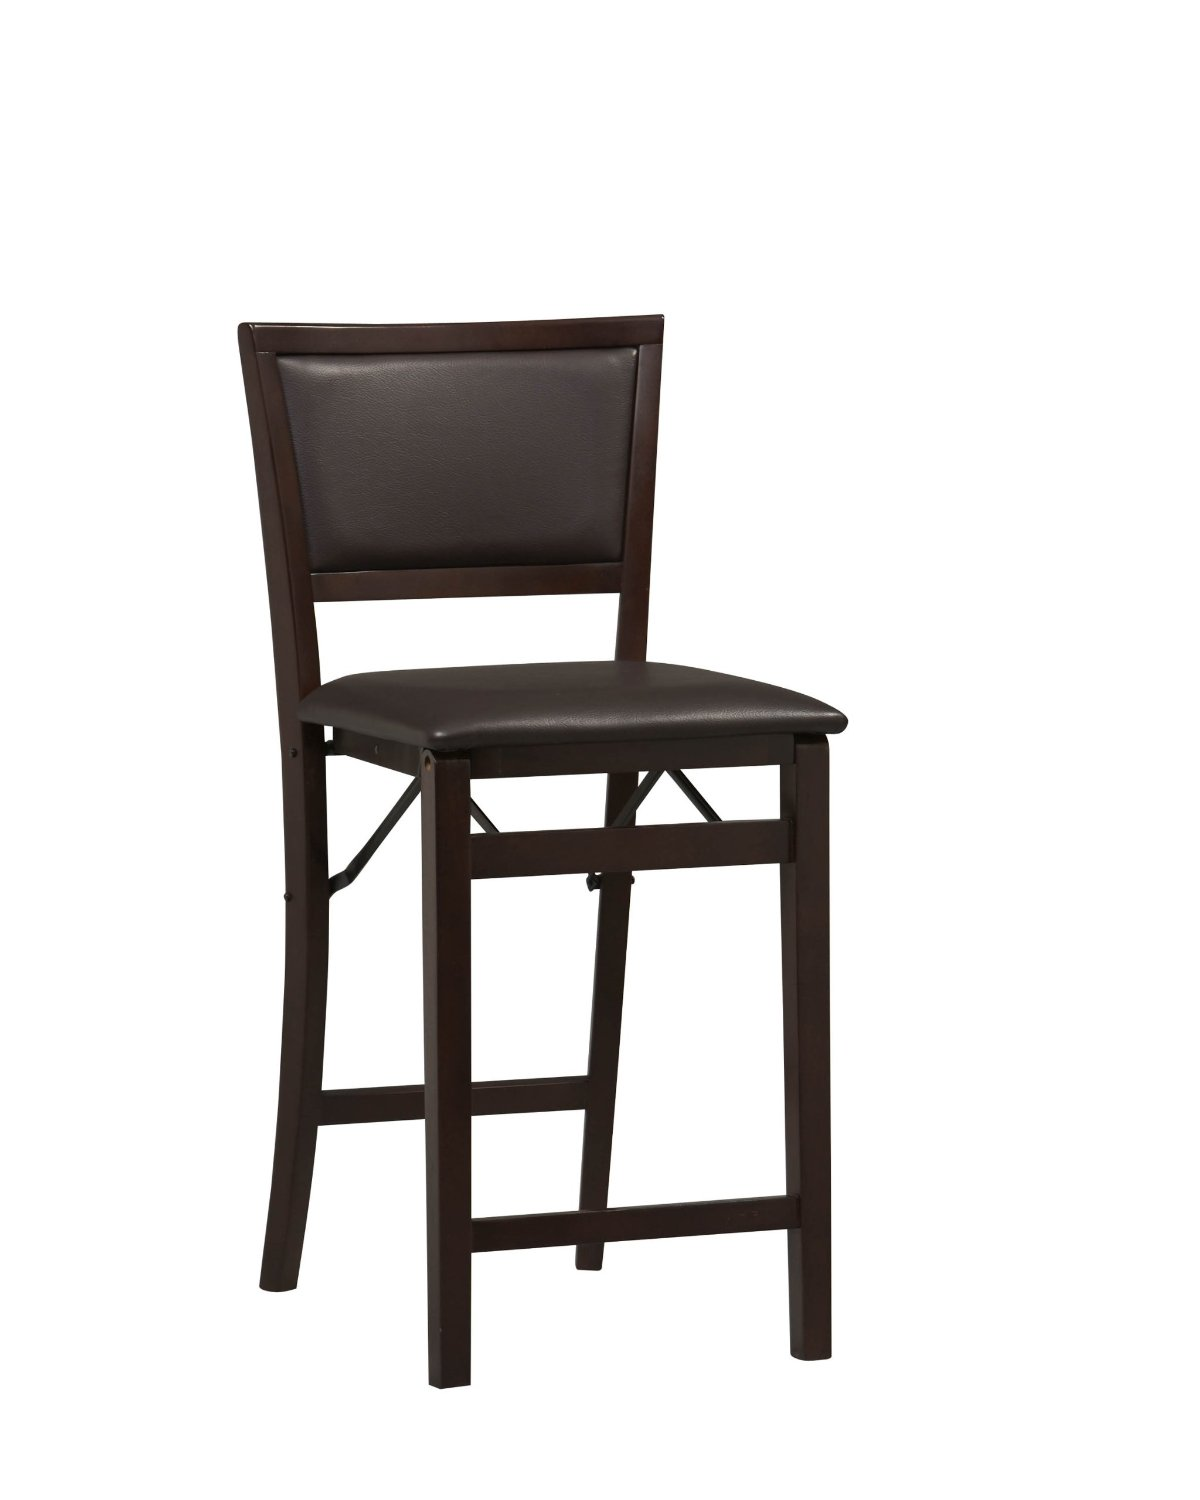 Featured Image of The Advantages Of Buying Modern Bar Stools In Online Stores